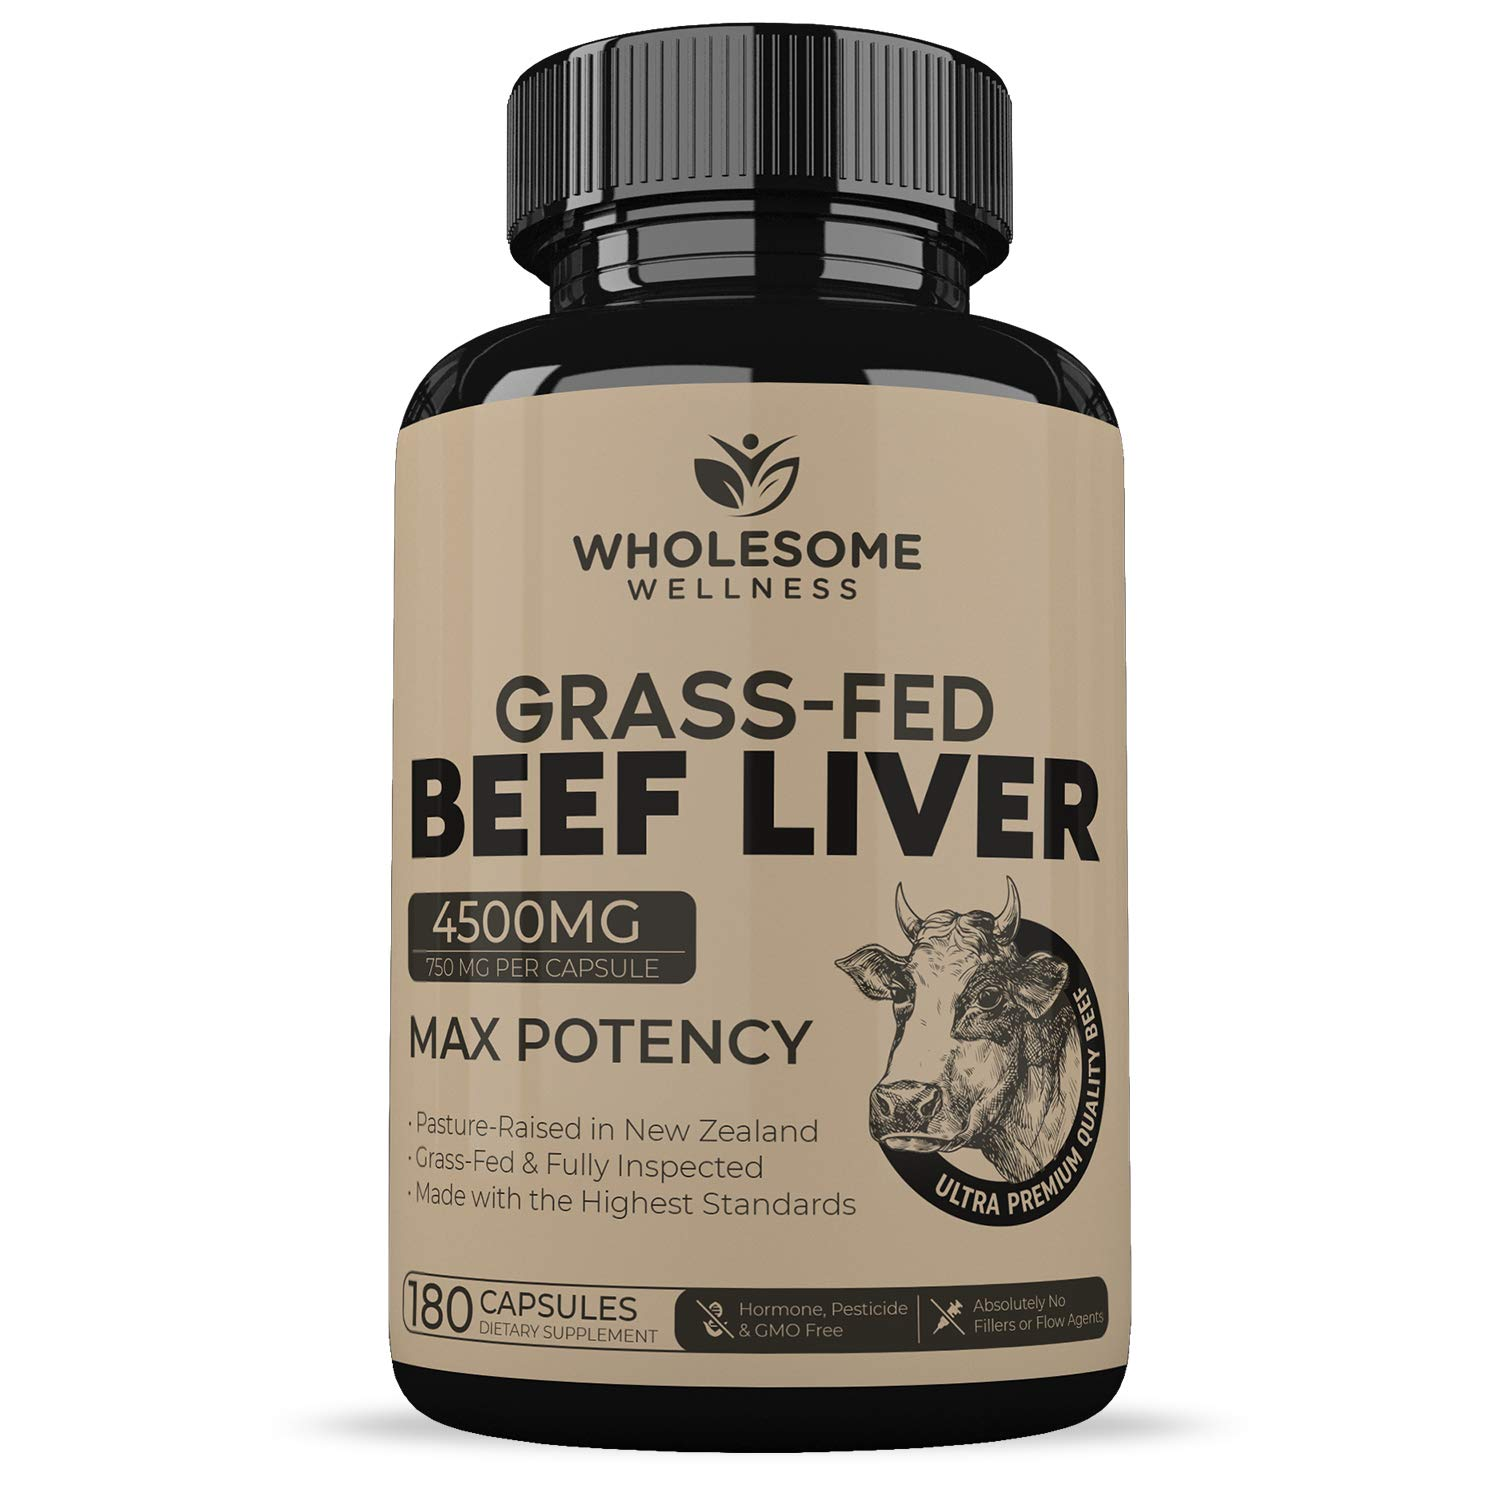 Grass-Fed Beef Liver Capsules (180 Capsules, 4500 Milligrams) - Premium Humanely Pasture Raised Without Hormones or Chemicals - Natural Iron, Vitamin A, B12 for Energy - Desiccated